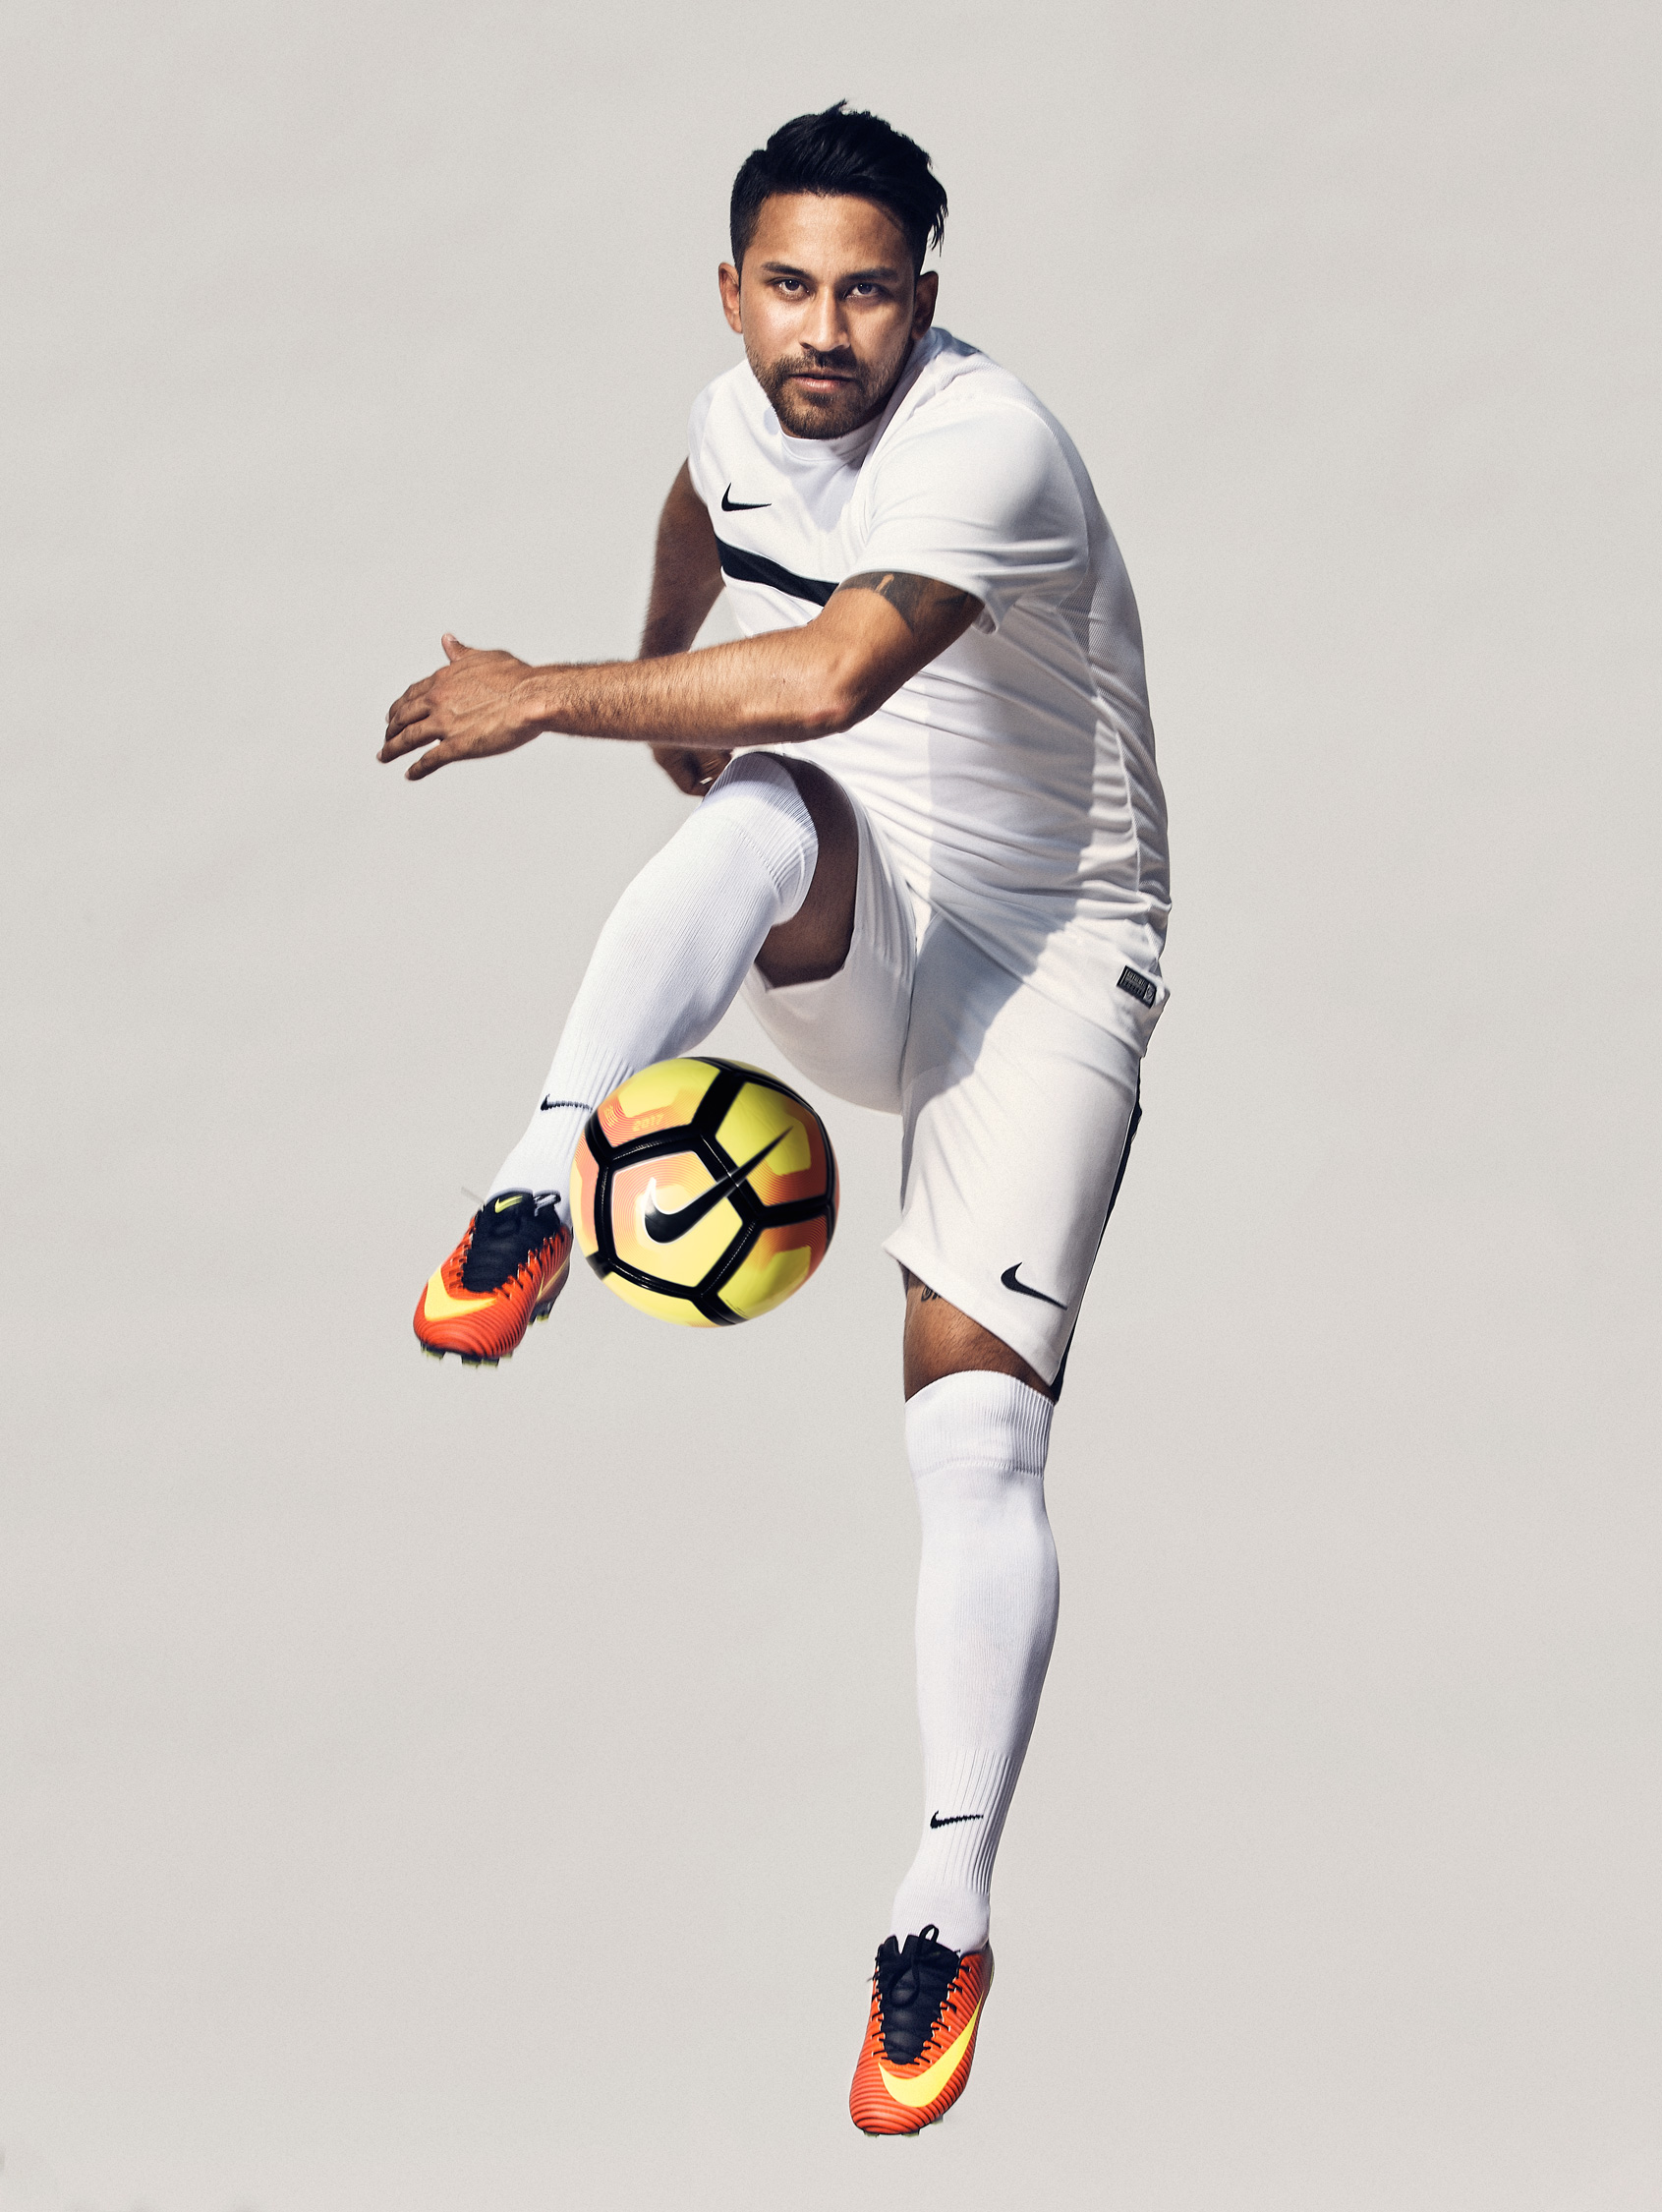 Nike Soccer - Stephen Denton Photography -  Los Angeles, California based  Commercial Photographer